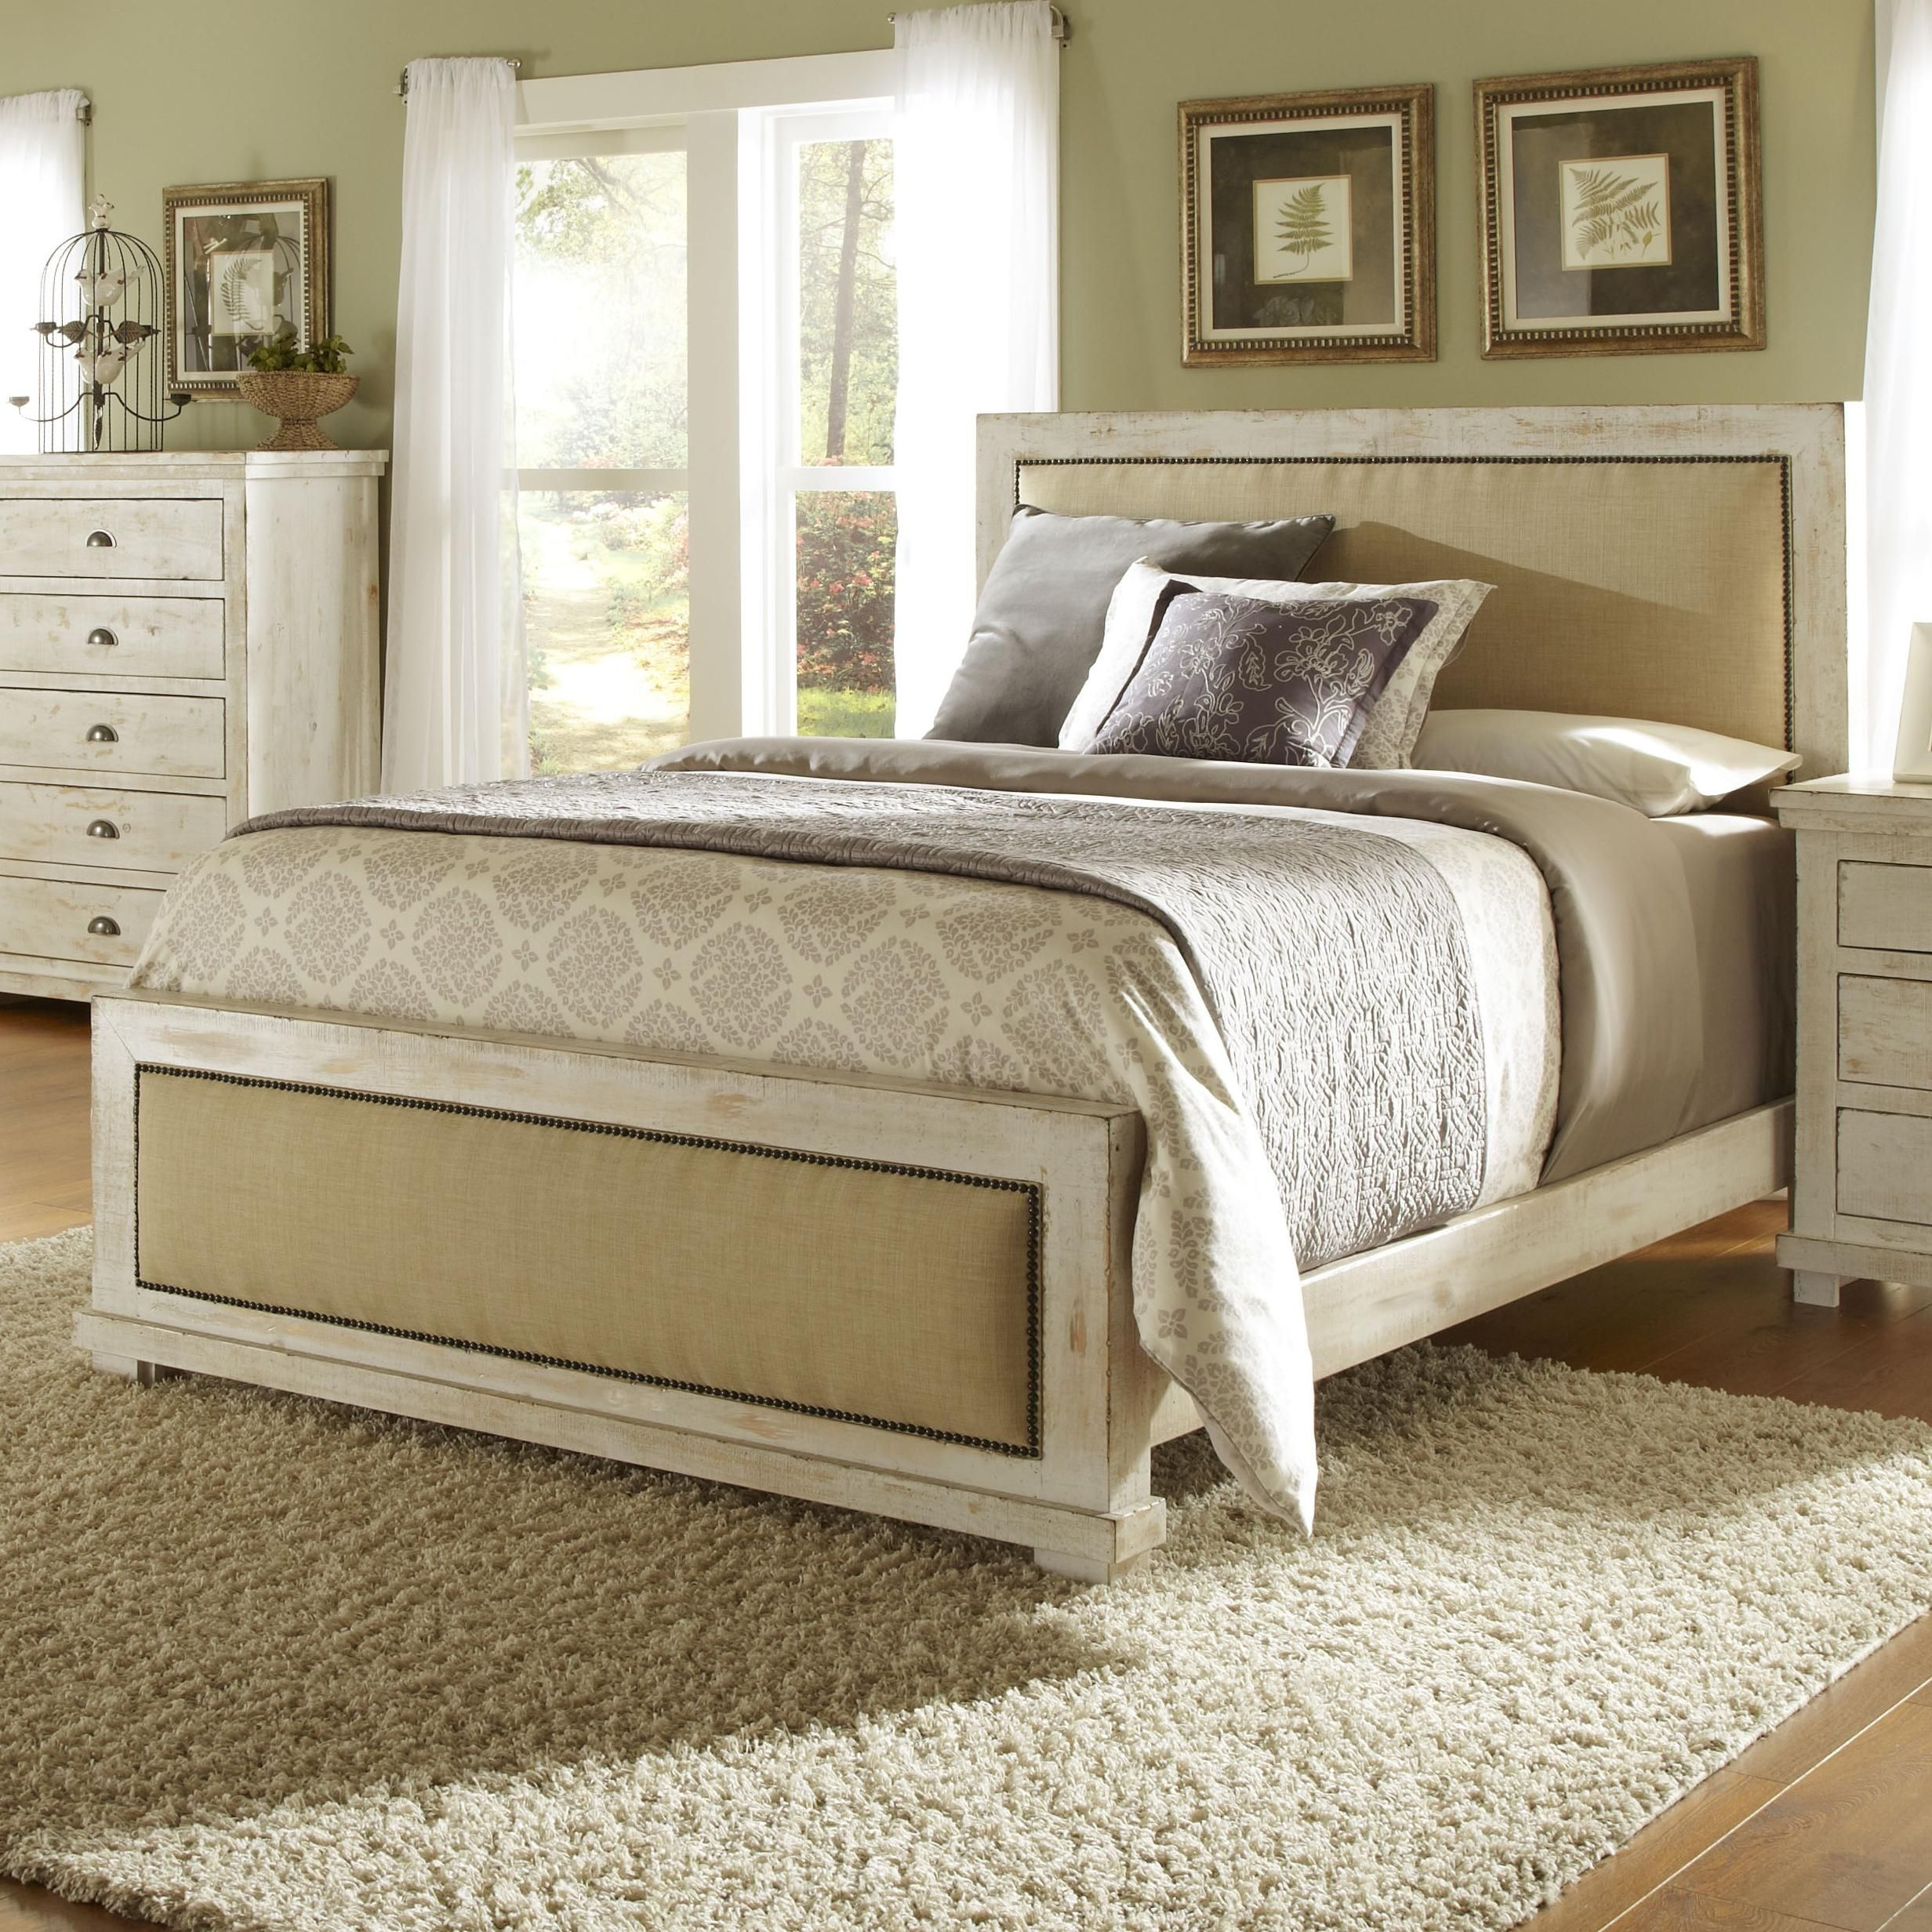 Willow Collection Bedroom Furniture Queen upholstered bed